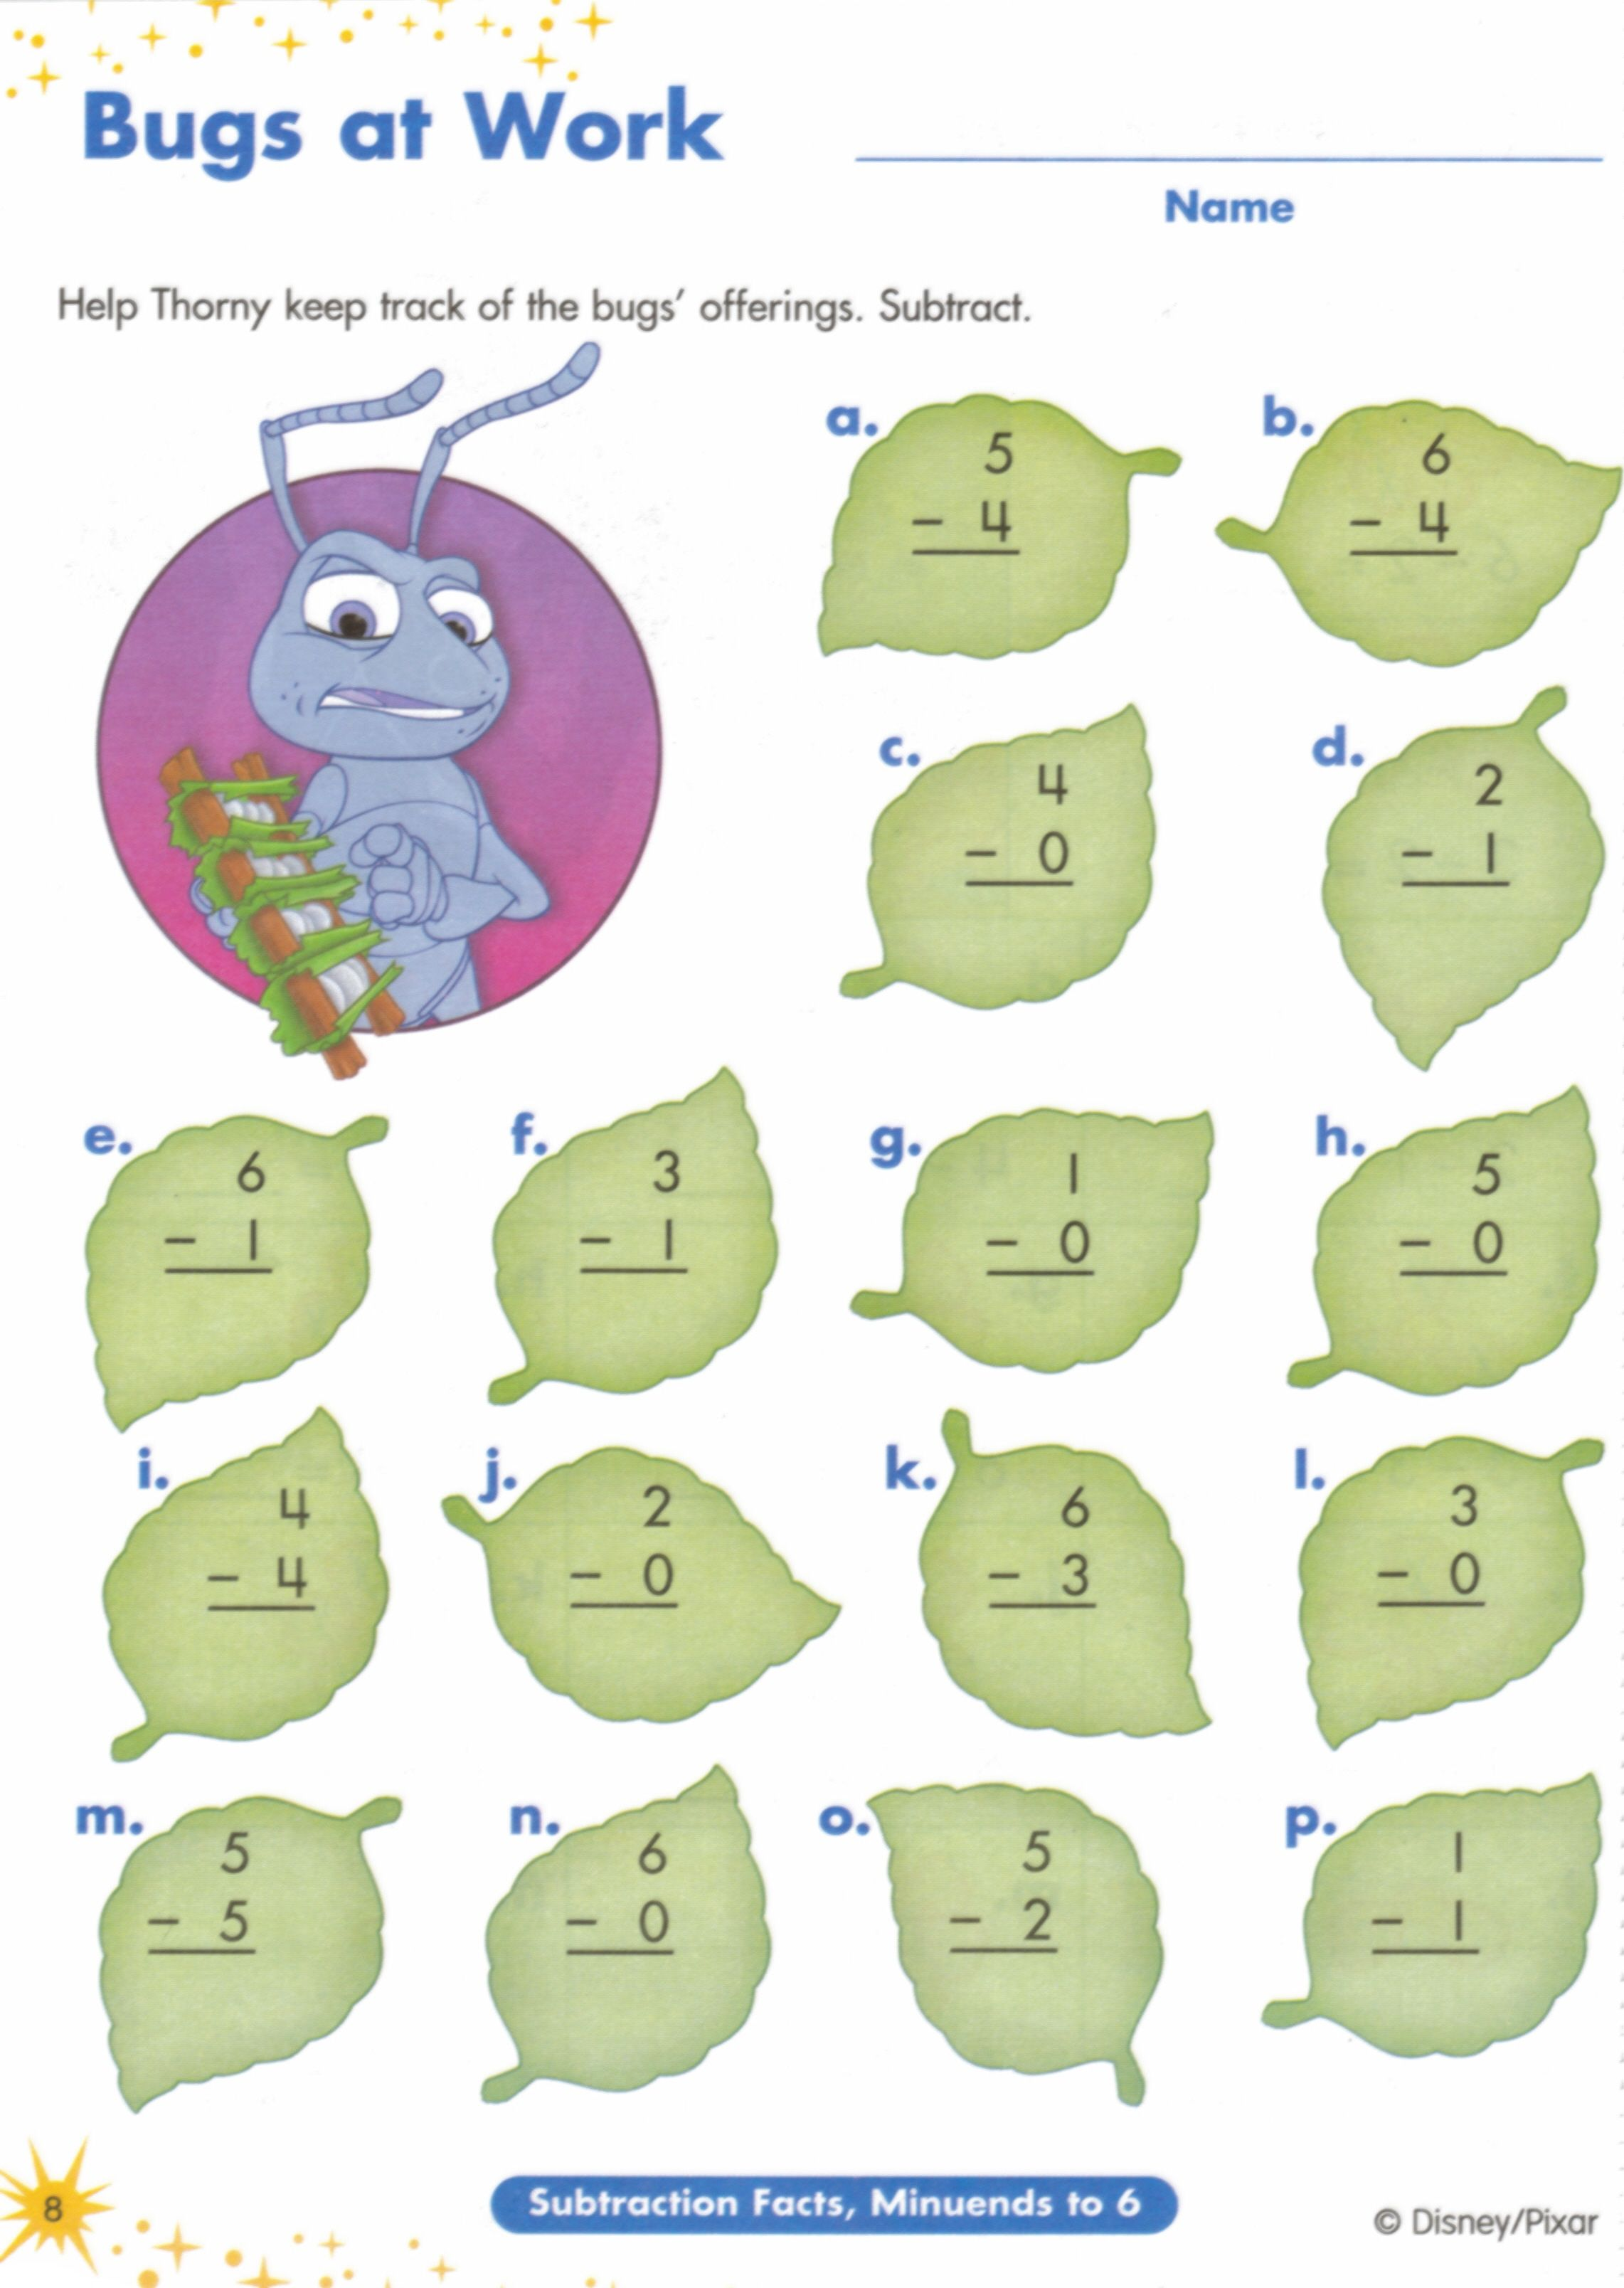 Weirdmailus  Fascinating  Images About Worksheets On Pinterest  Fun Facts For Kids  With Remarkable  Images About Worksheets On Pinterest  Fun Facts For Kids Earth Day Worksheets And Jungles With Astonishing Simplifying Fractions Worksheets Pdf Also Free Download Printable Worksheets For Kindergarten In Addition Grade  Math Ontario Worksheets And Easy Alphabet Worksheets As Well As Adjectival Phrases Worksheet Additionally Algebra  Worksheet Solving Exponential Equations From Pinterestcom With Weirdmailus  Remarkable  Images About Worksheets On Pinterest  Fun Facts For Kids  With Astonishing  Images About Worksheets On Pinterest  Fun Facts For Kids Earth Day Worksheets And Jungles And Fascinating Simplifying Fractions Worksheets Pdf Also Free Download Printable Worksheets For Kindergarten In Addition Grade  Math Ontario Worksheets From Pinterestcom